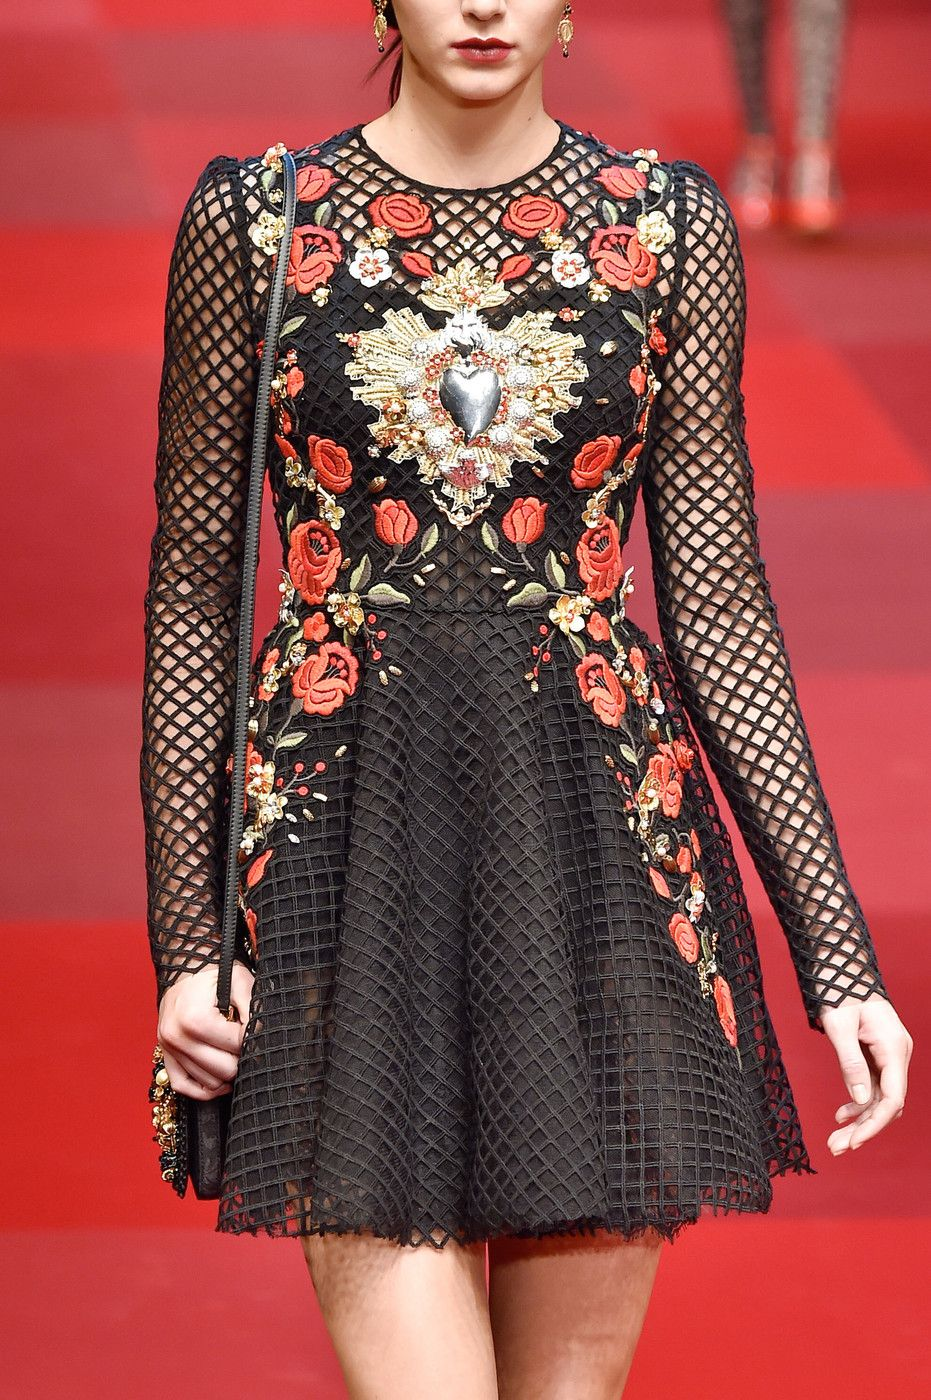 Dolce & Gabbana at Milan Fashion Week Spring 2015.